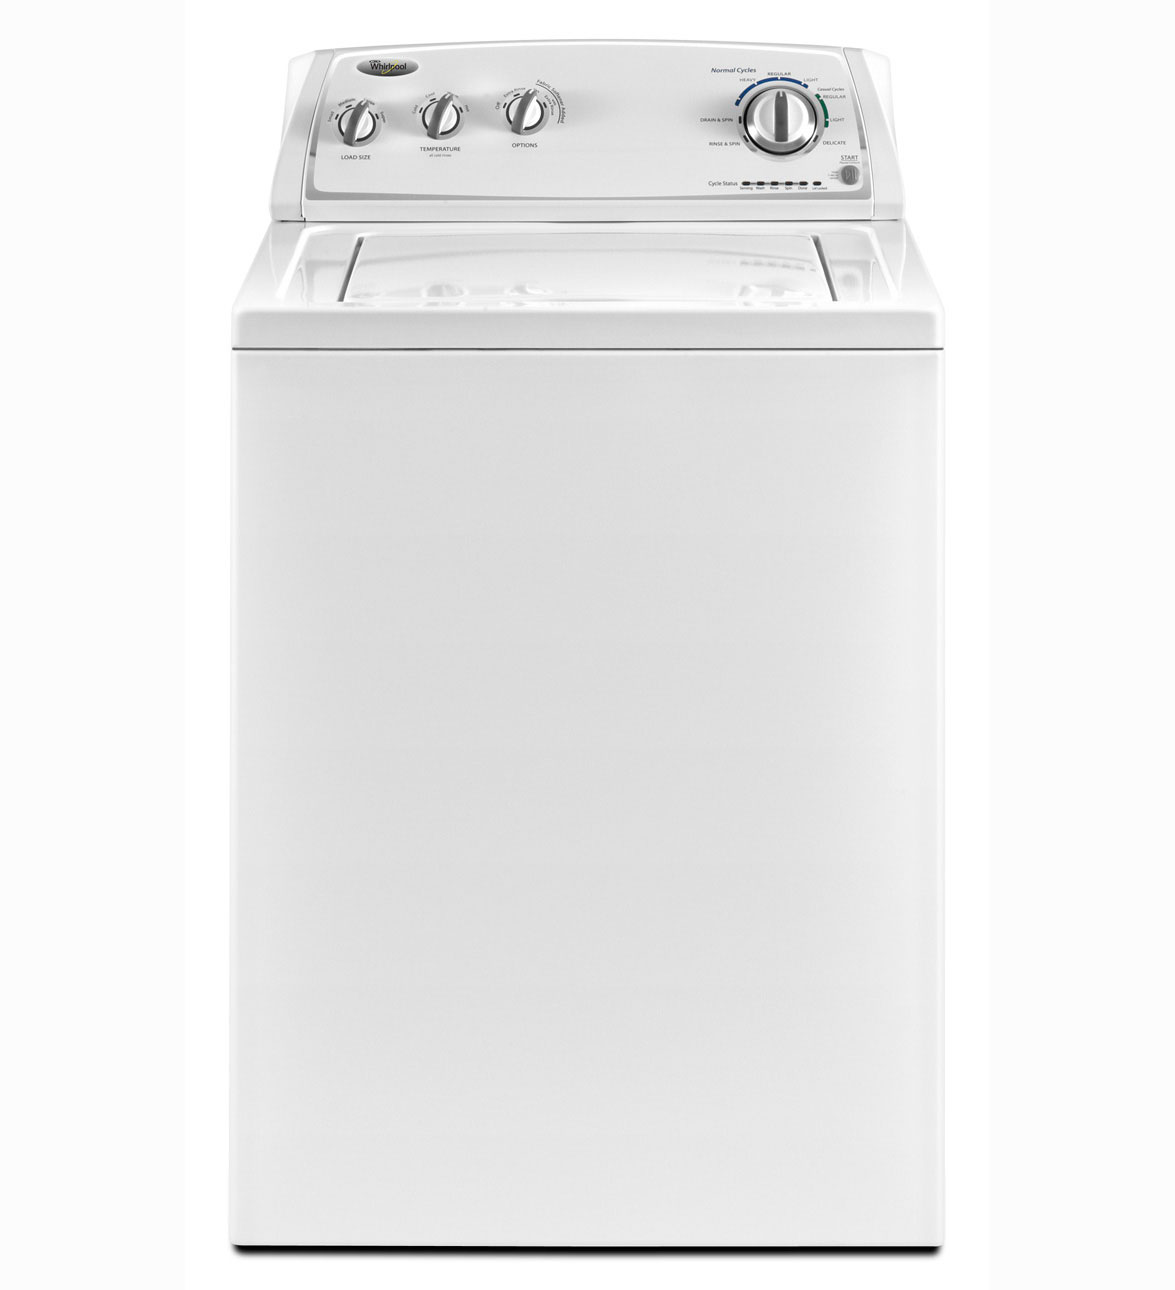 Review of Whirlpool 3.4 cu ft Top-Load Washer (White) (Model: WTW4800XQ)